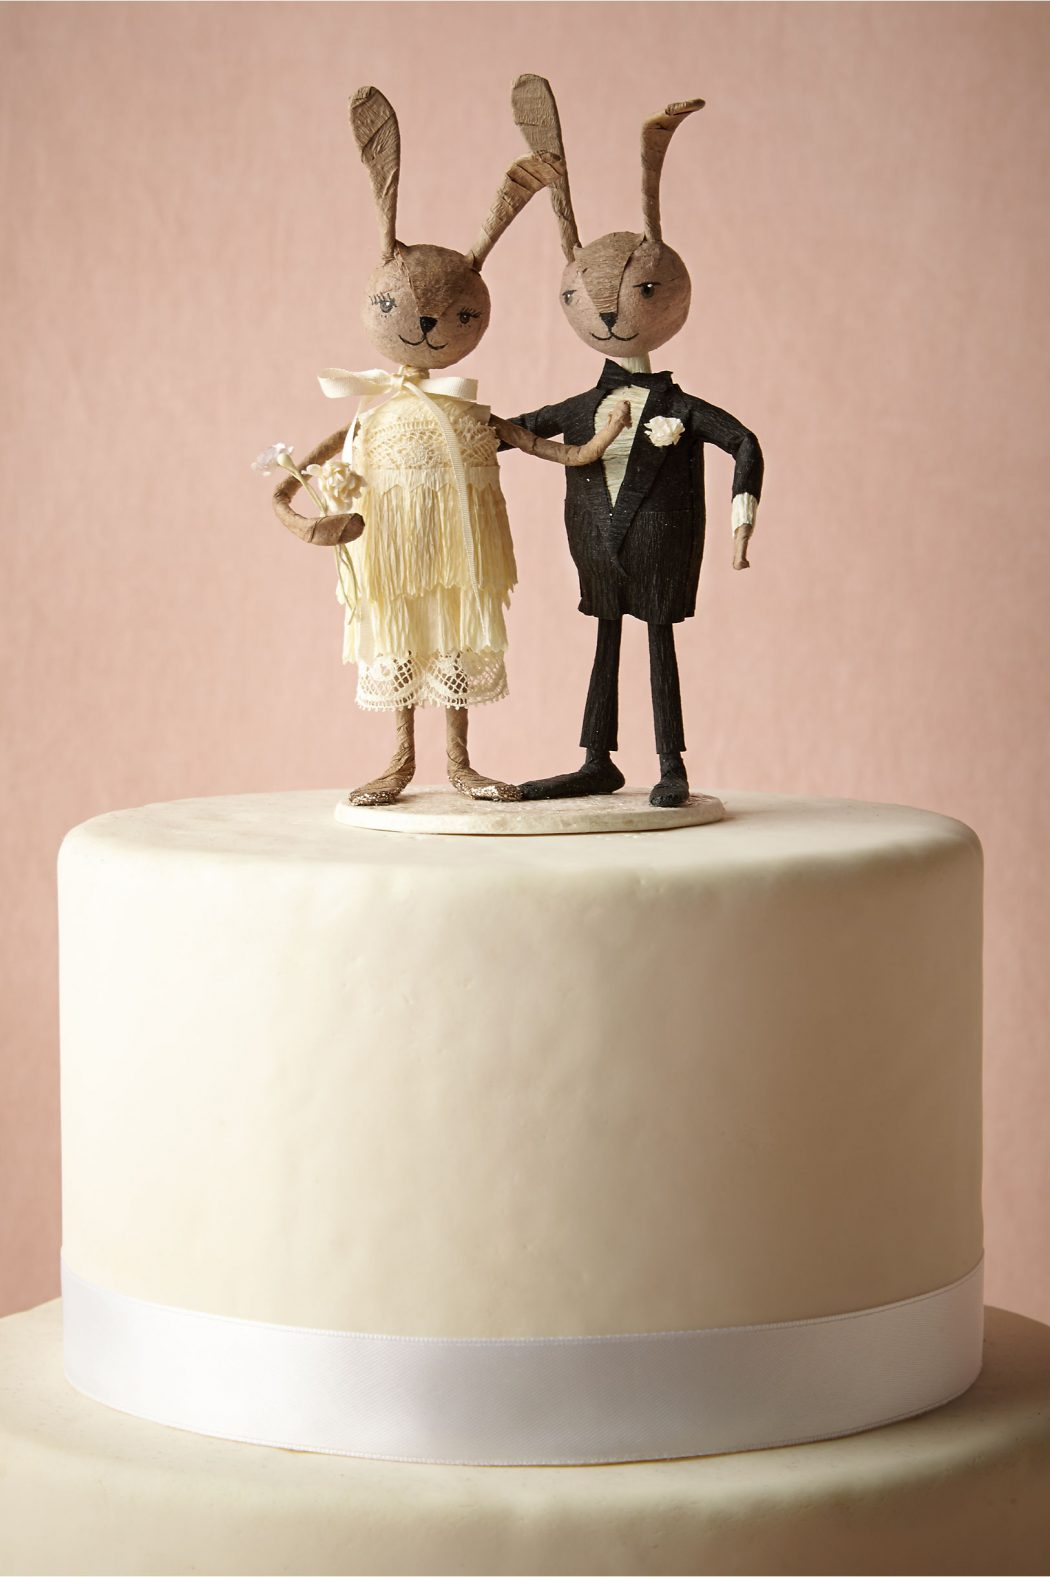 31959166_015_a Top 10 Most Unique and Funny Wedding Cake Toppers 2019